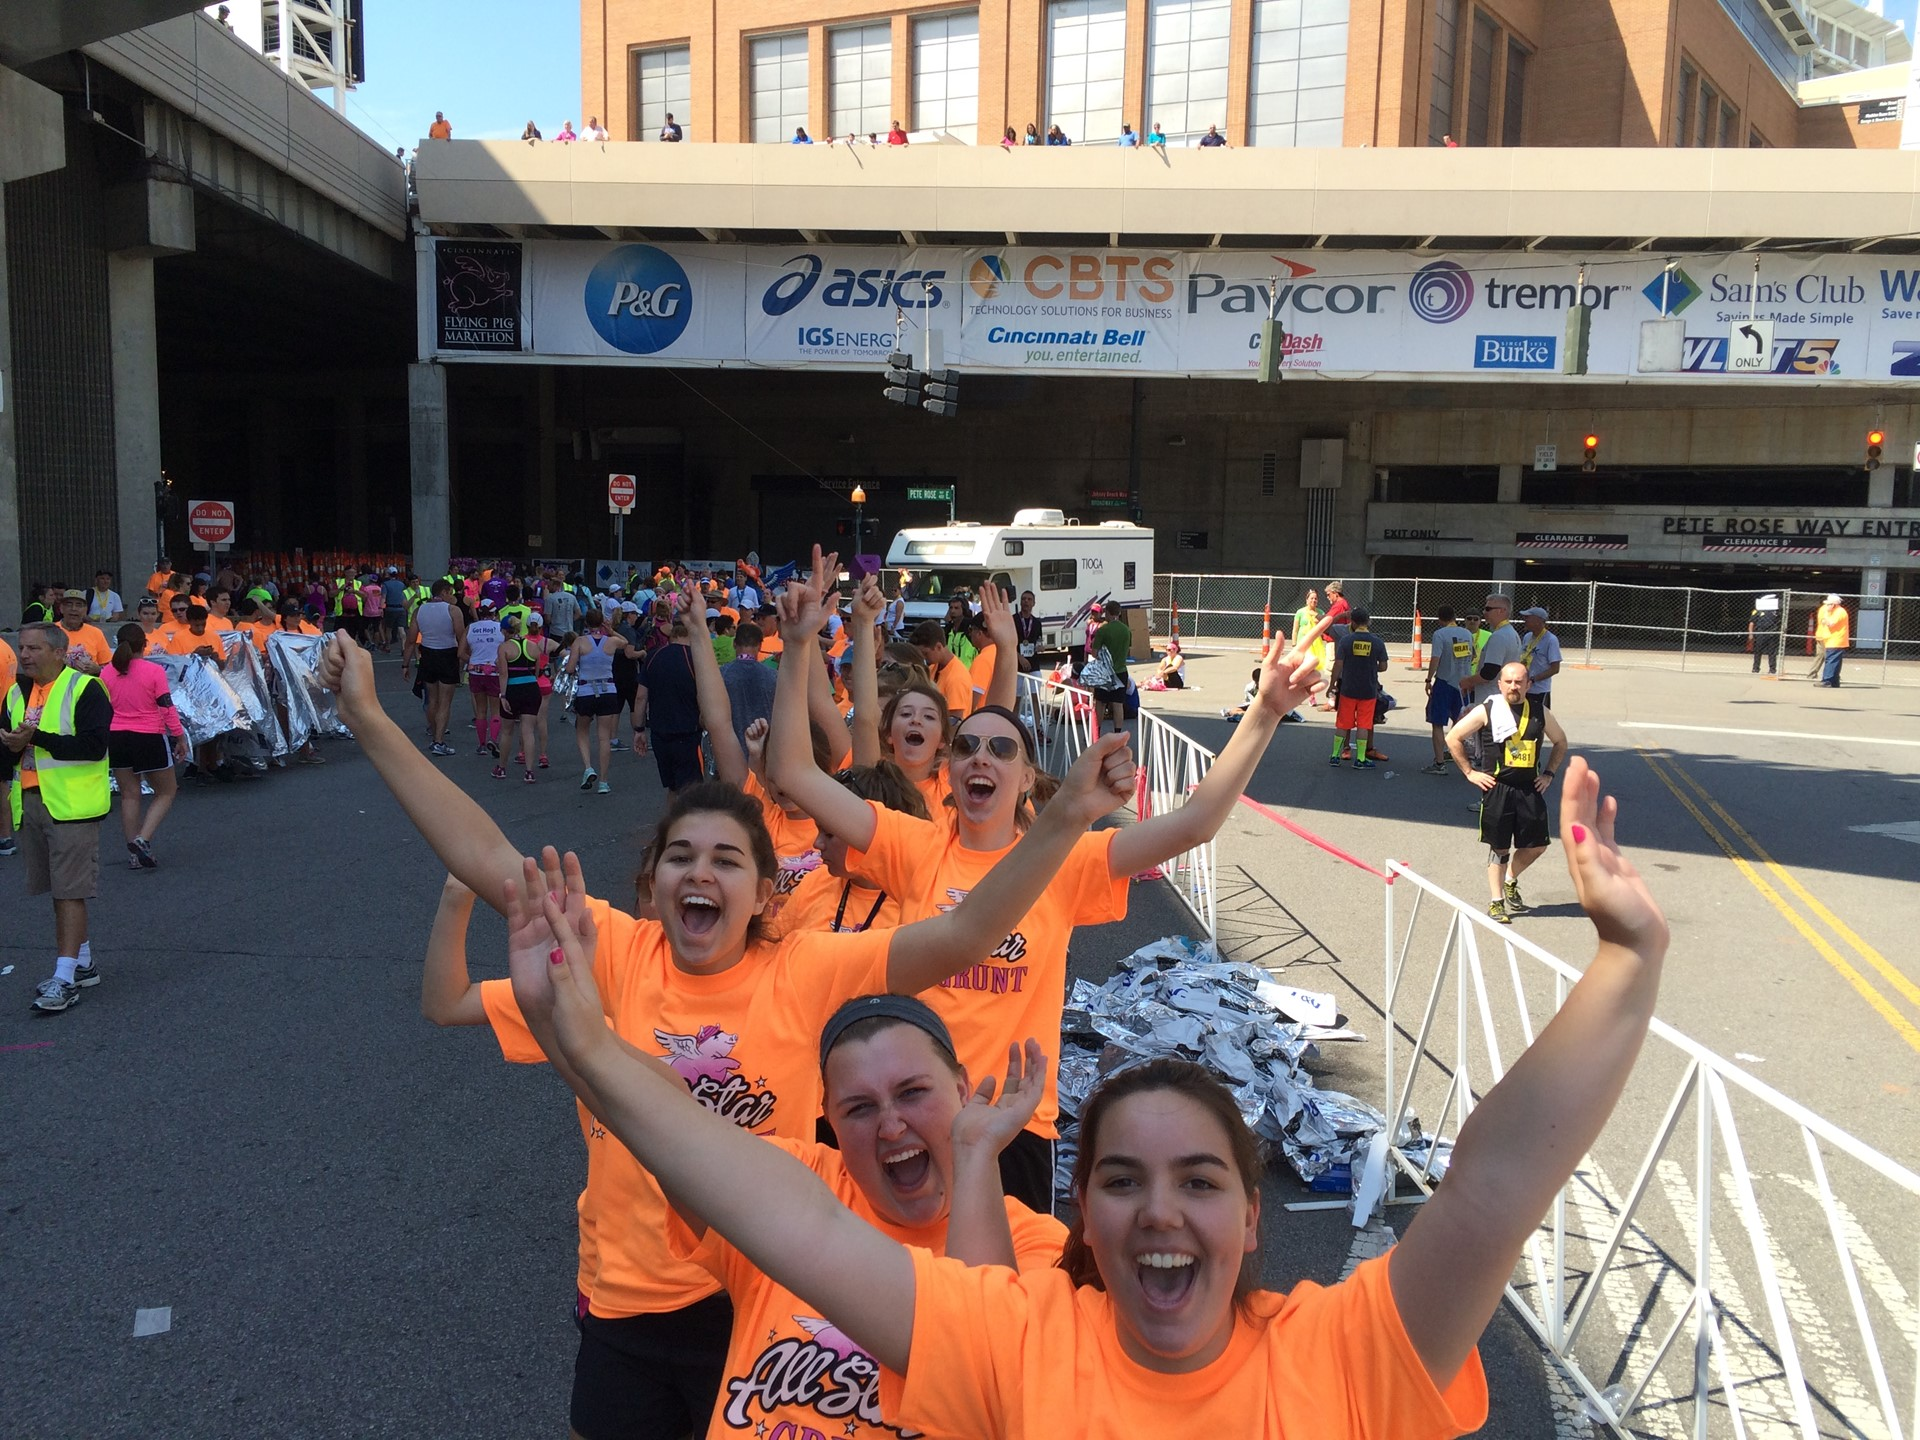 Several SUA students cheered on the runners of the Flying Pig Marathon